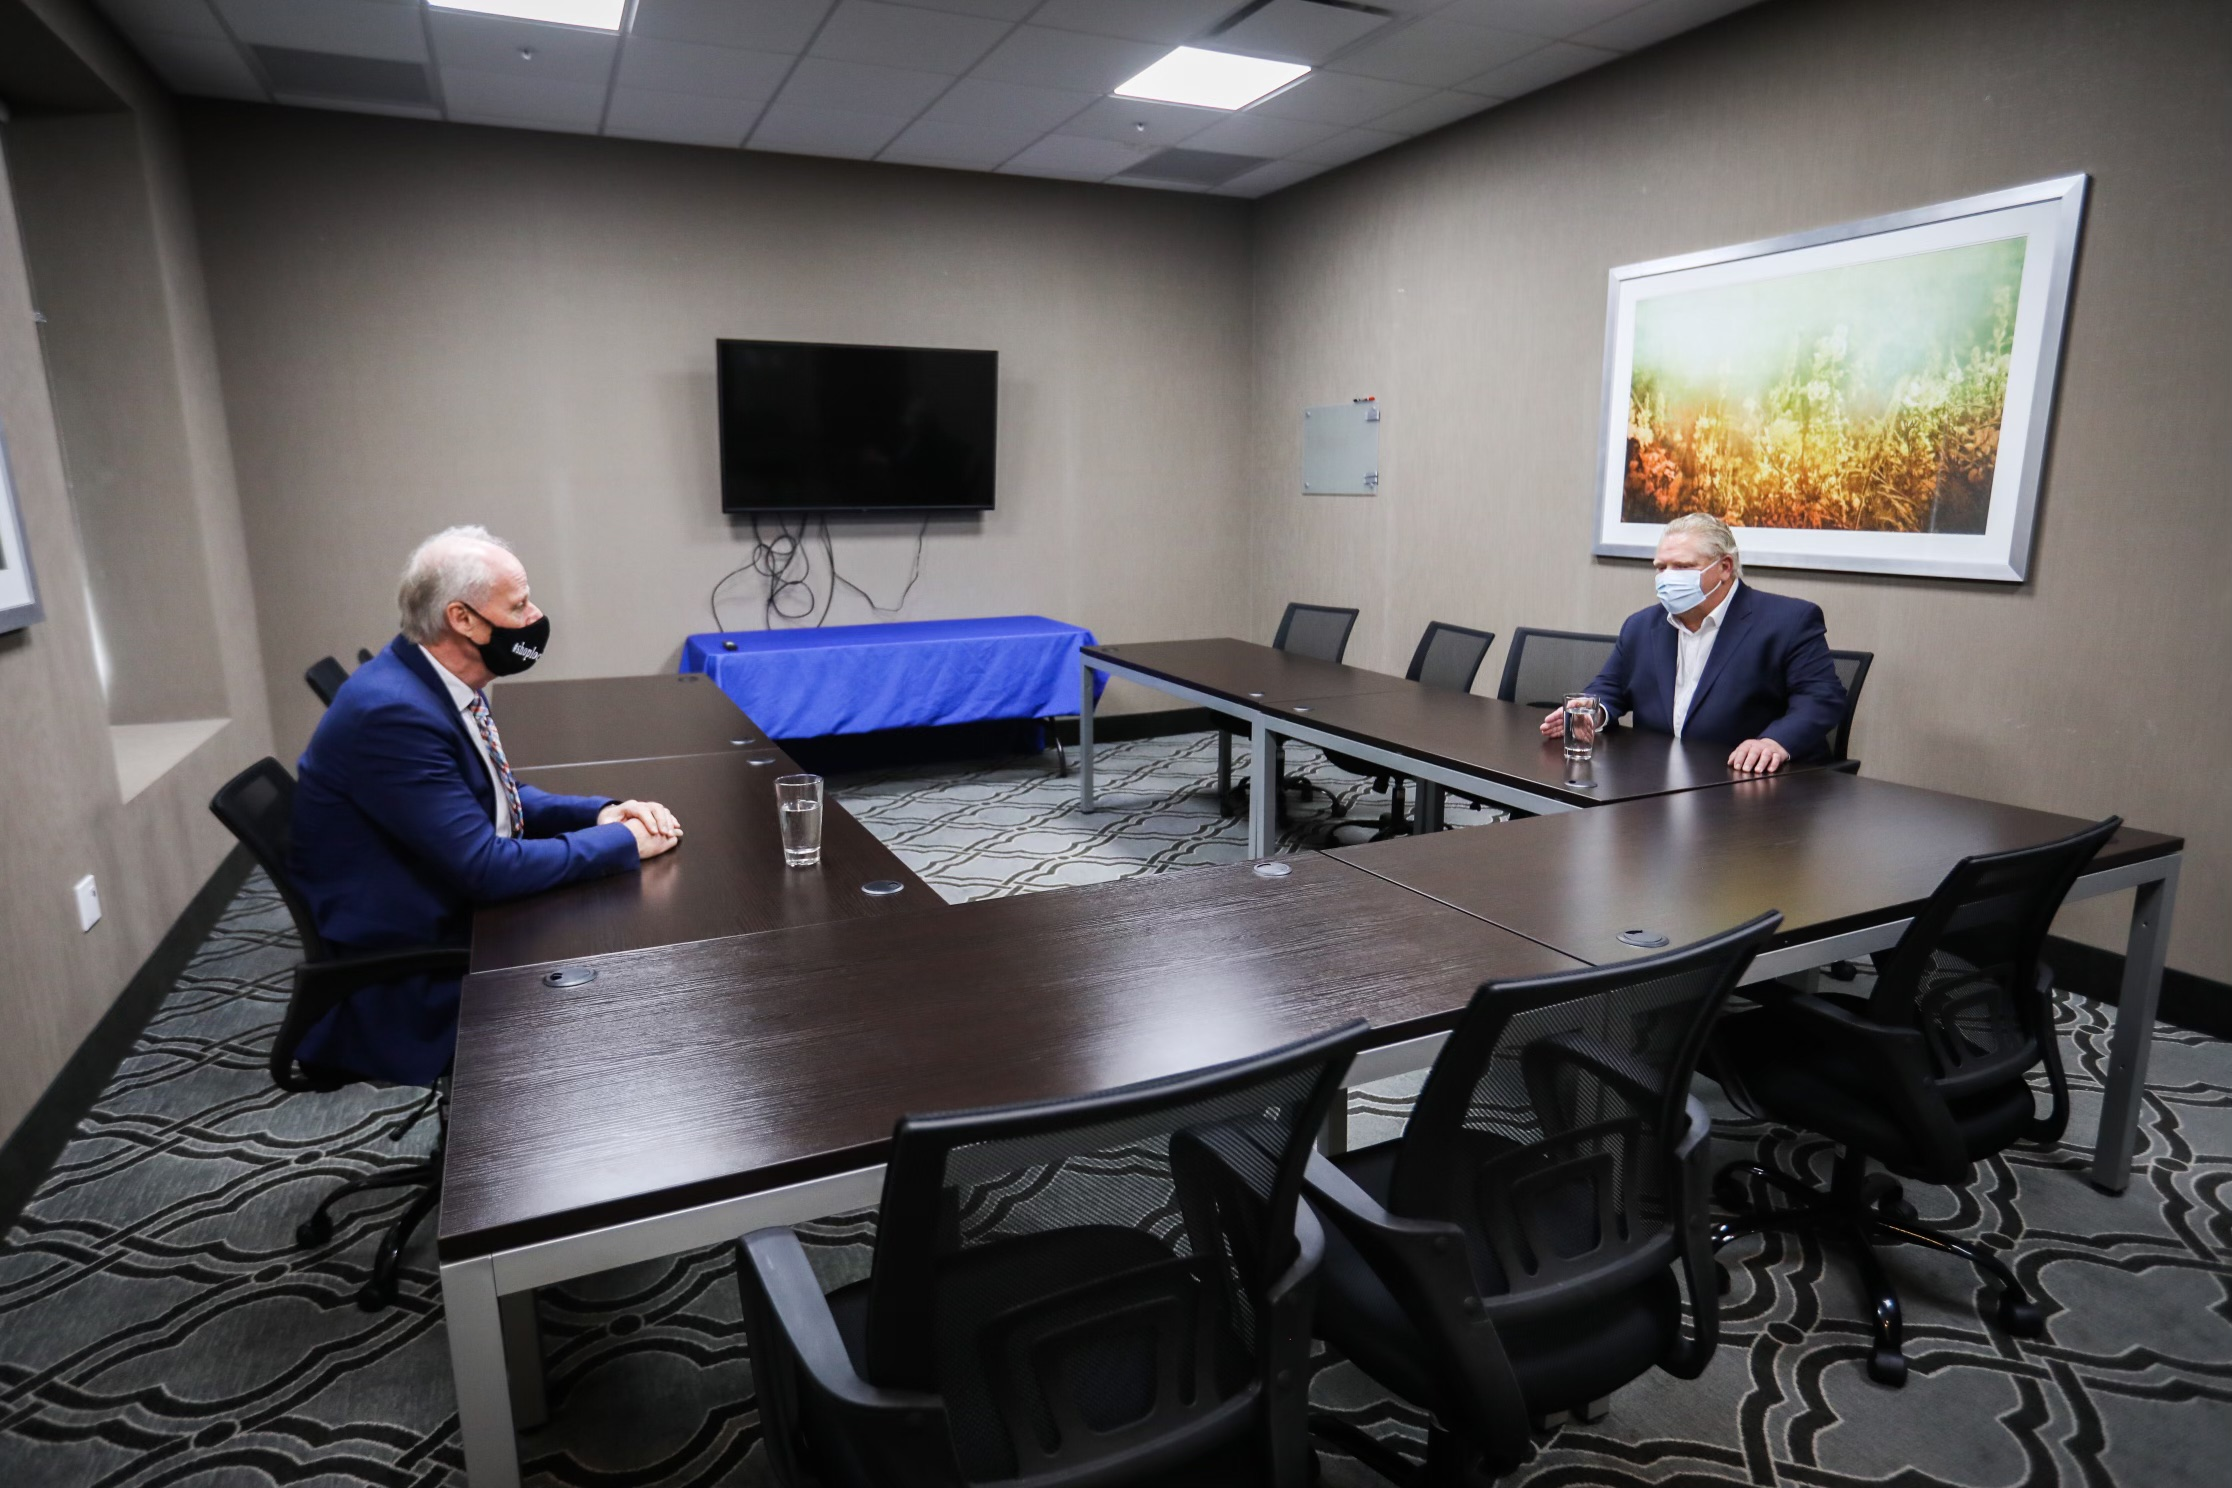 Mayor Carter meets with Premier Doug Ford